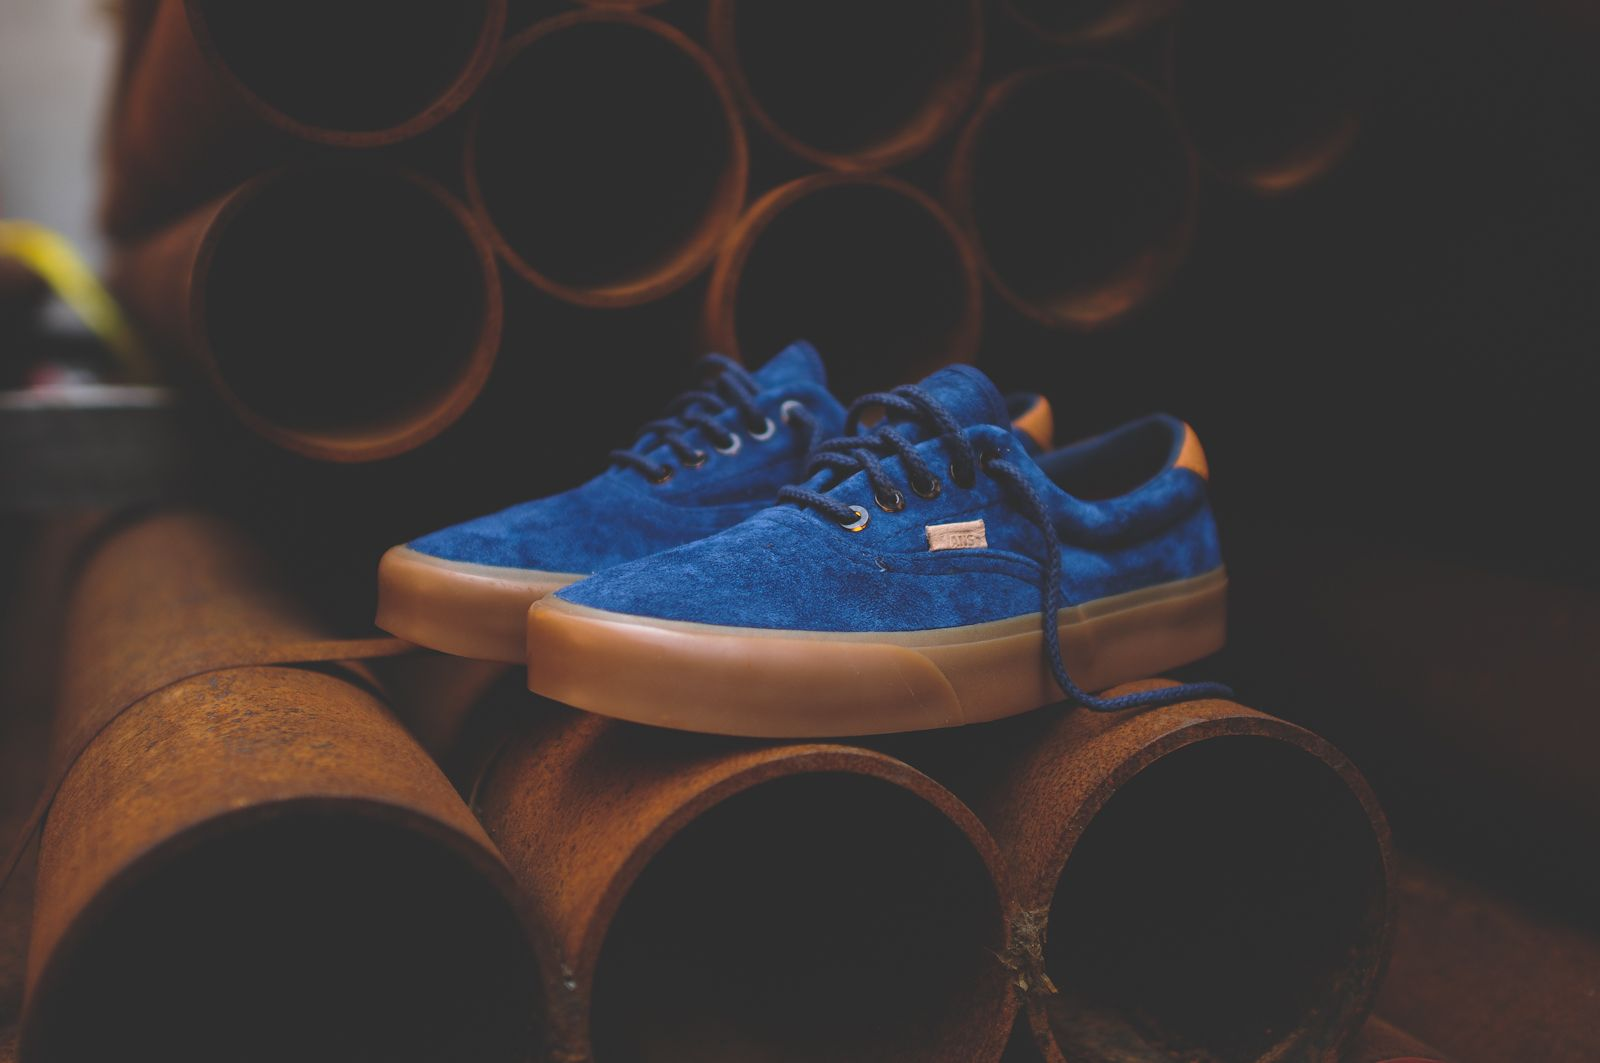 vans prelow denim camouflage shoes nz